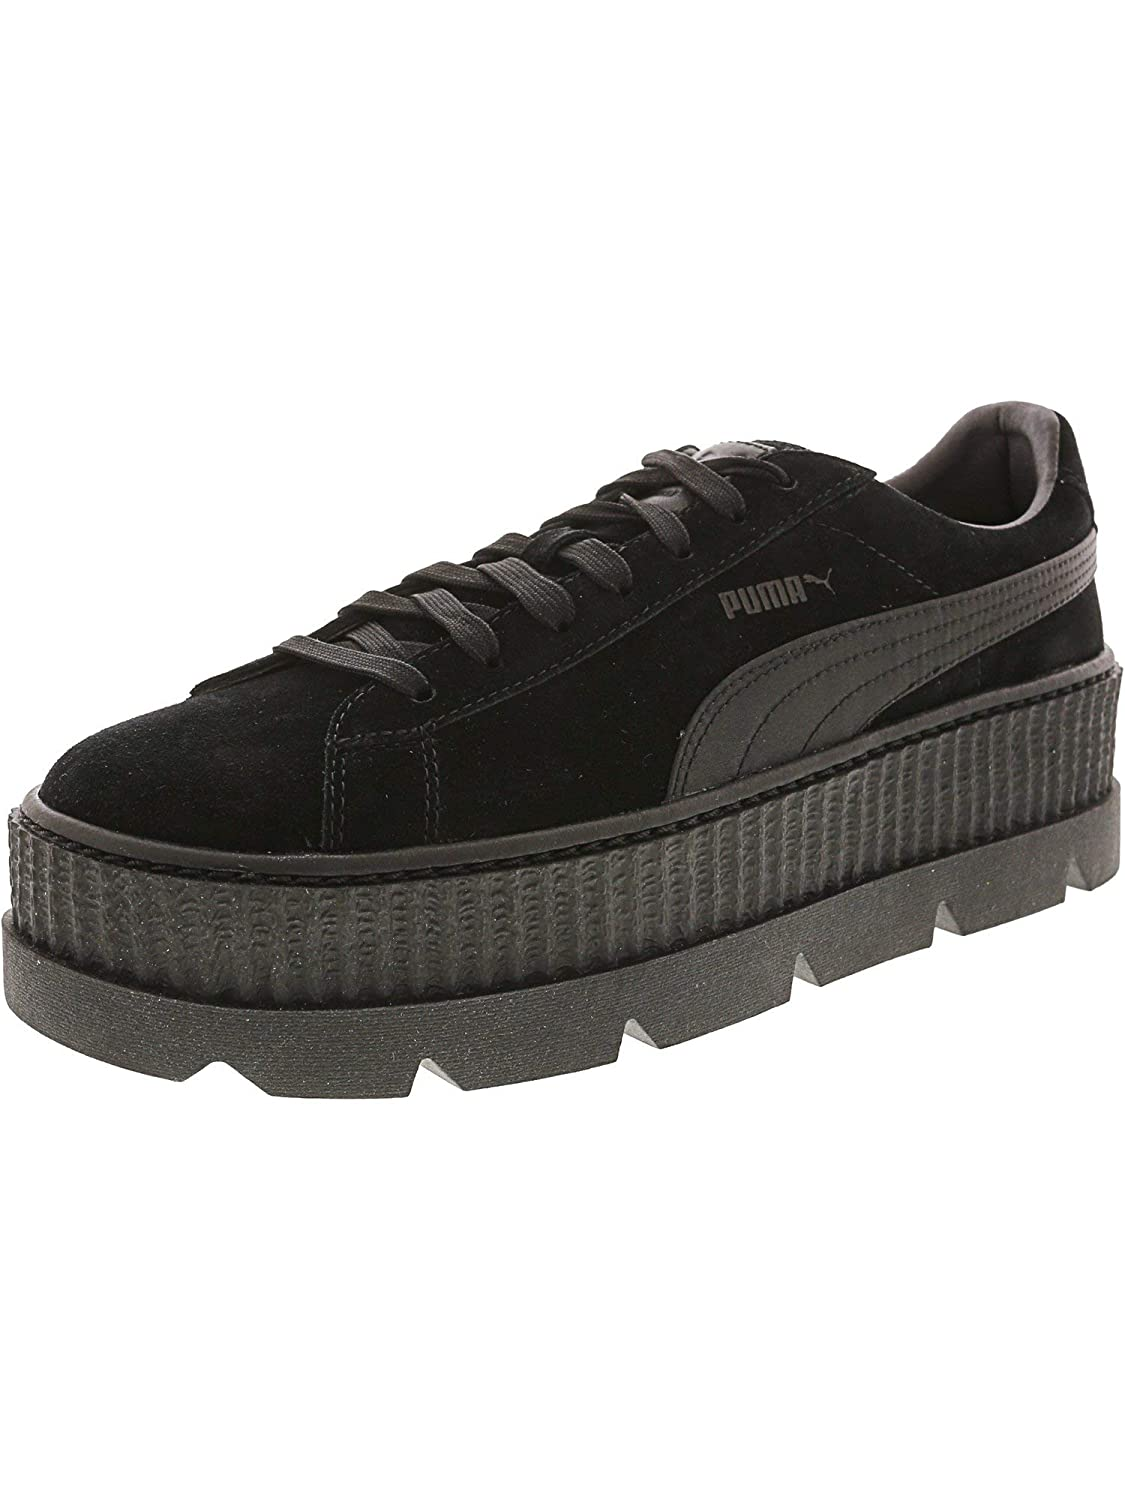 designer fashion e760e a52ae Puma Mens Cleated Creeper Suede: Amazon.co.uk: Shoes & Bags